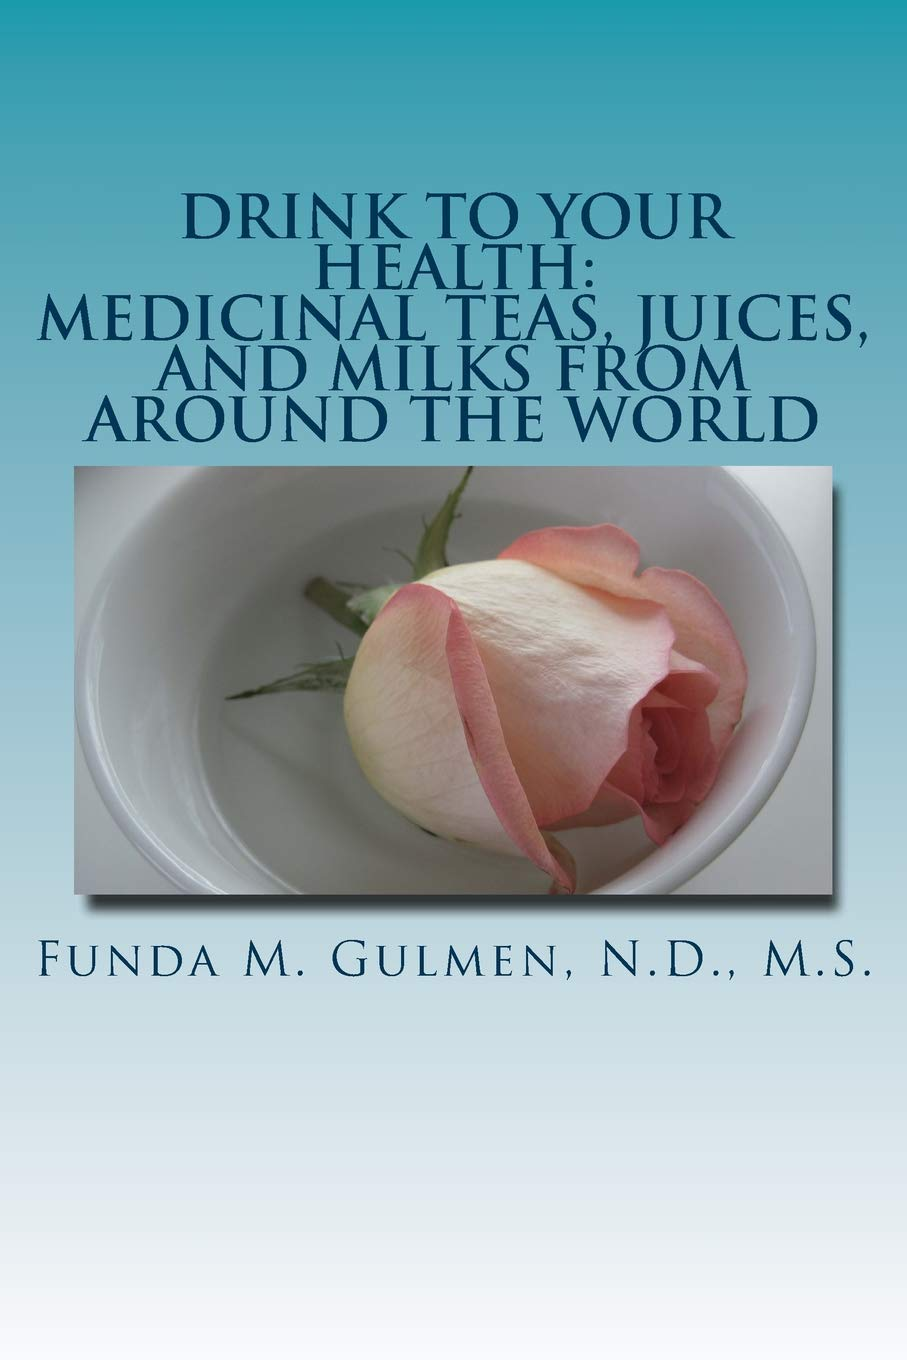 Drink to Your Health: Medicinal Teas, Juices, and Milks from ...